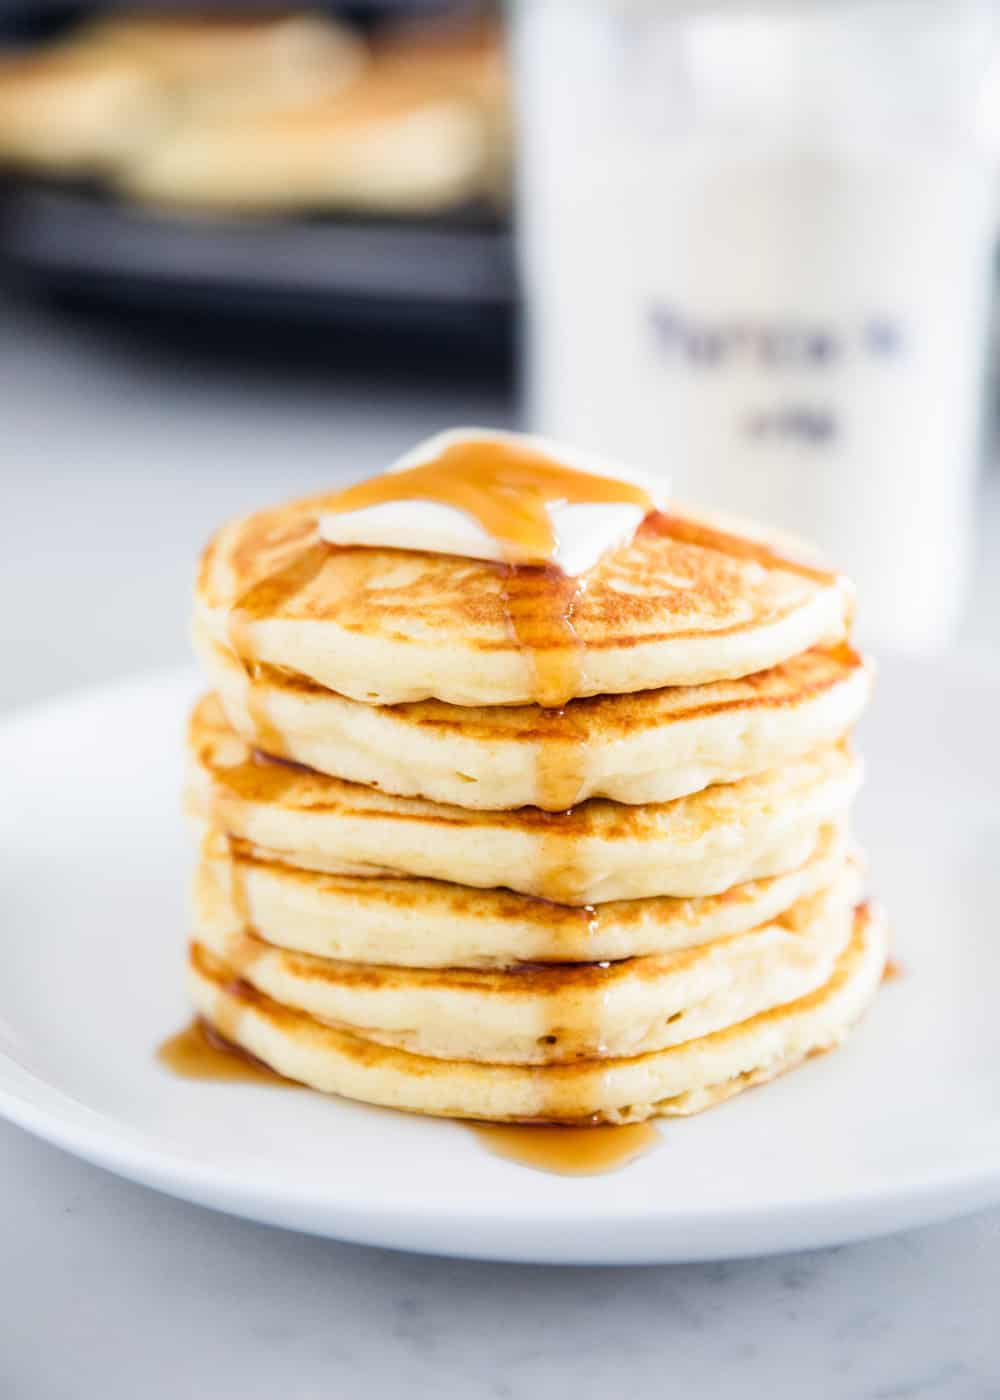 Easy 5 Ingredient Pancake Mix I Heart Naptime